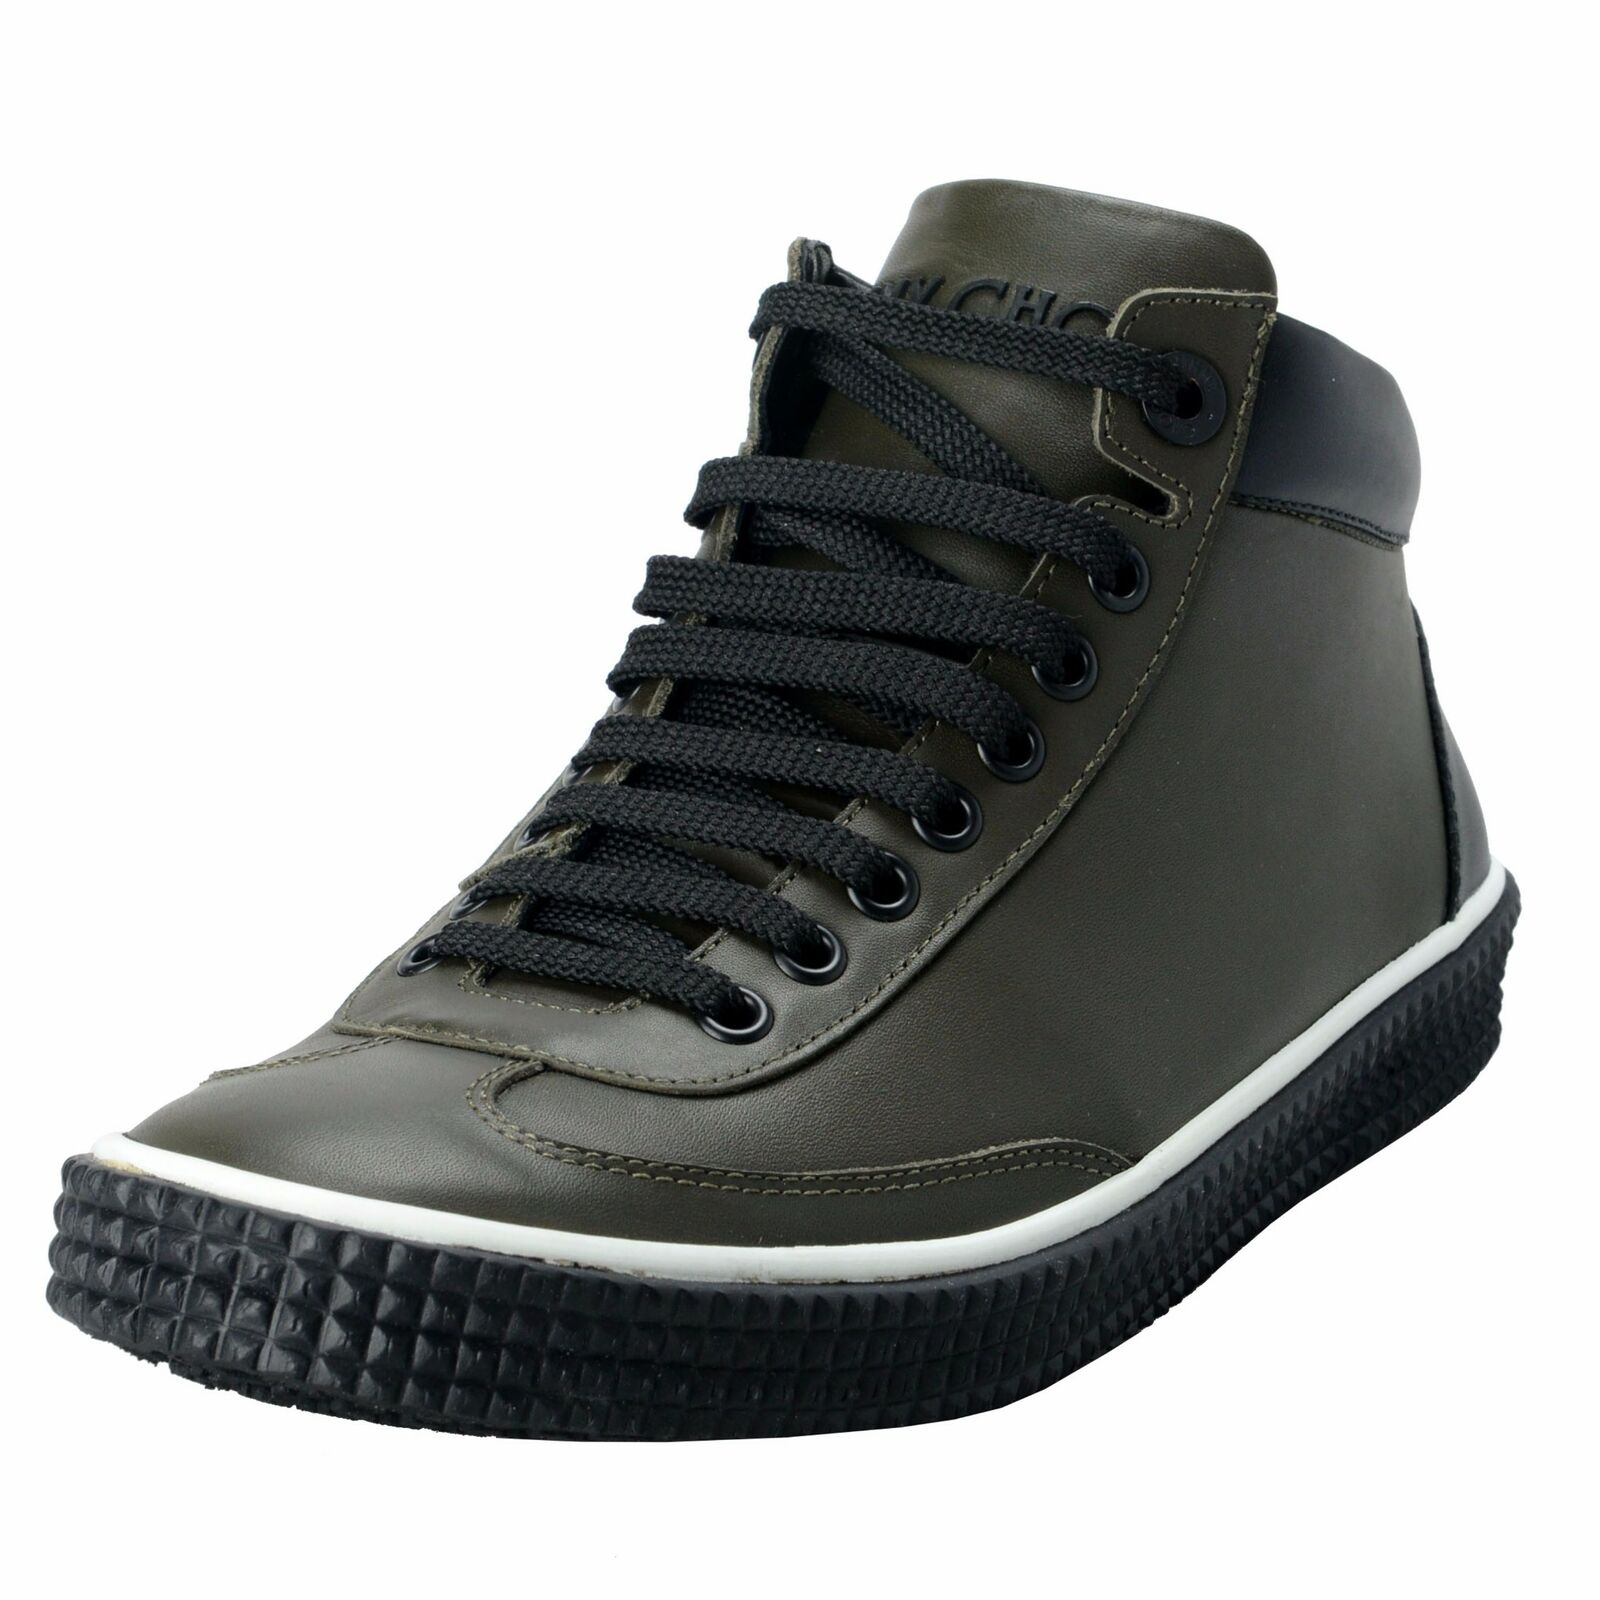 Jimmy Choo Varley Men's Leather Forest verde Hi Top Fashion scarpe da ginnastica scarpe